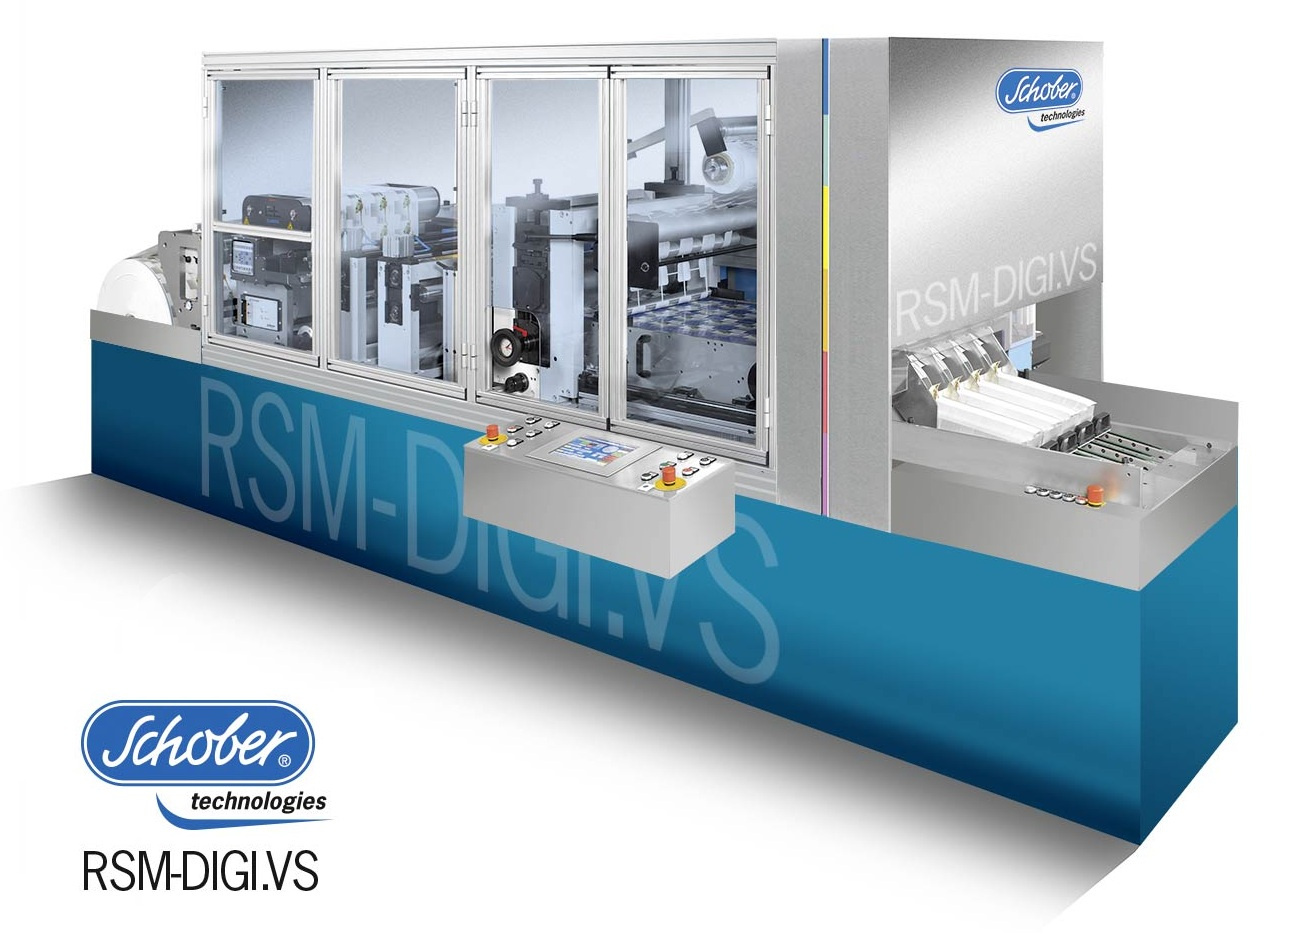 Schober technologies introduces the RSM-DIGI.VS, especially designed to convert digitally printed film and foil